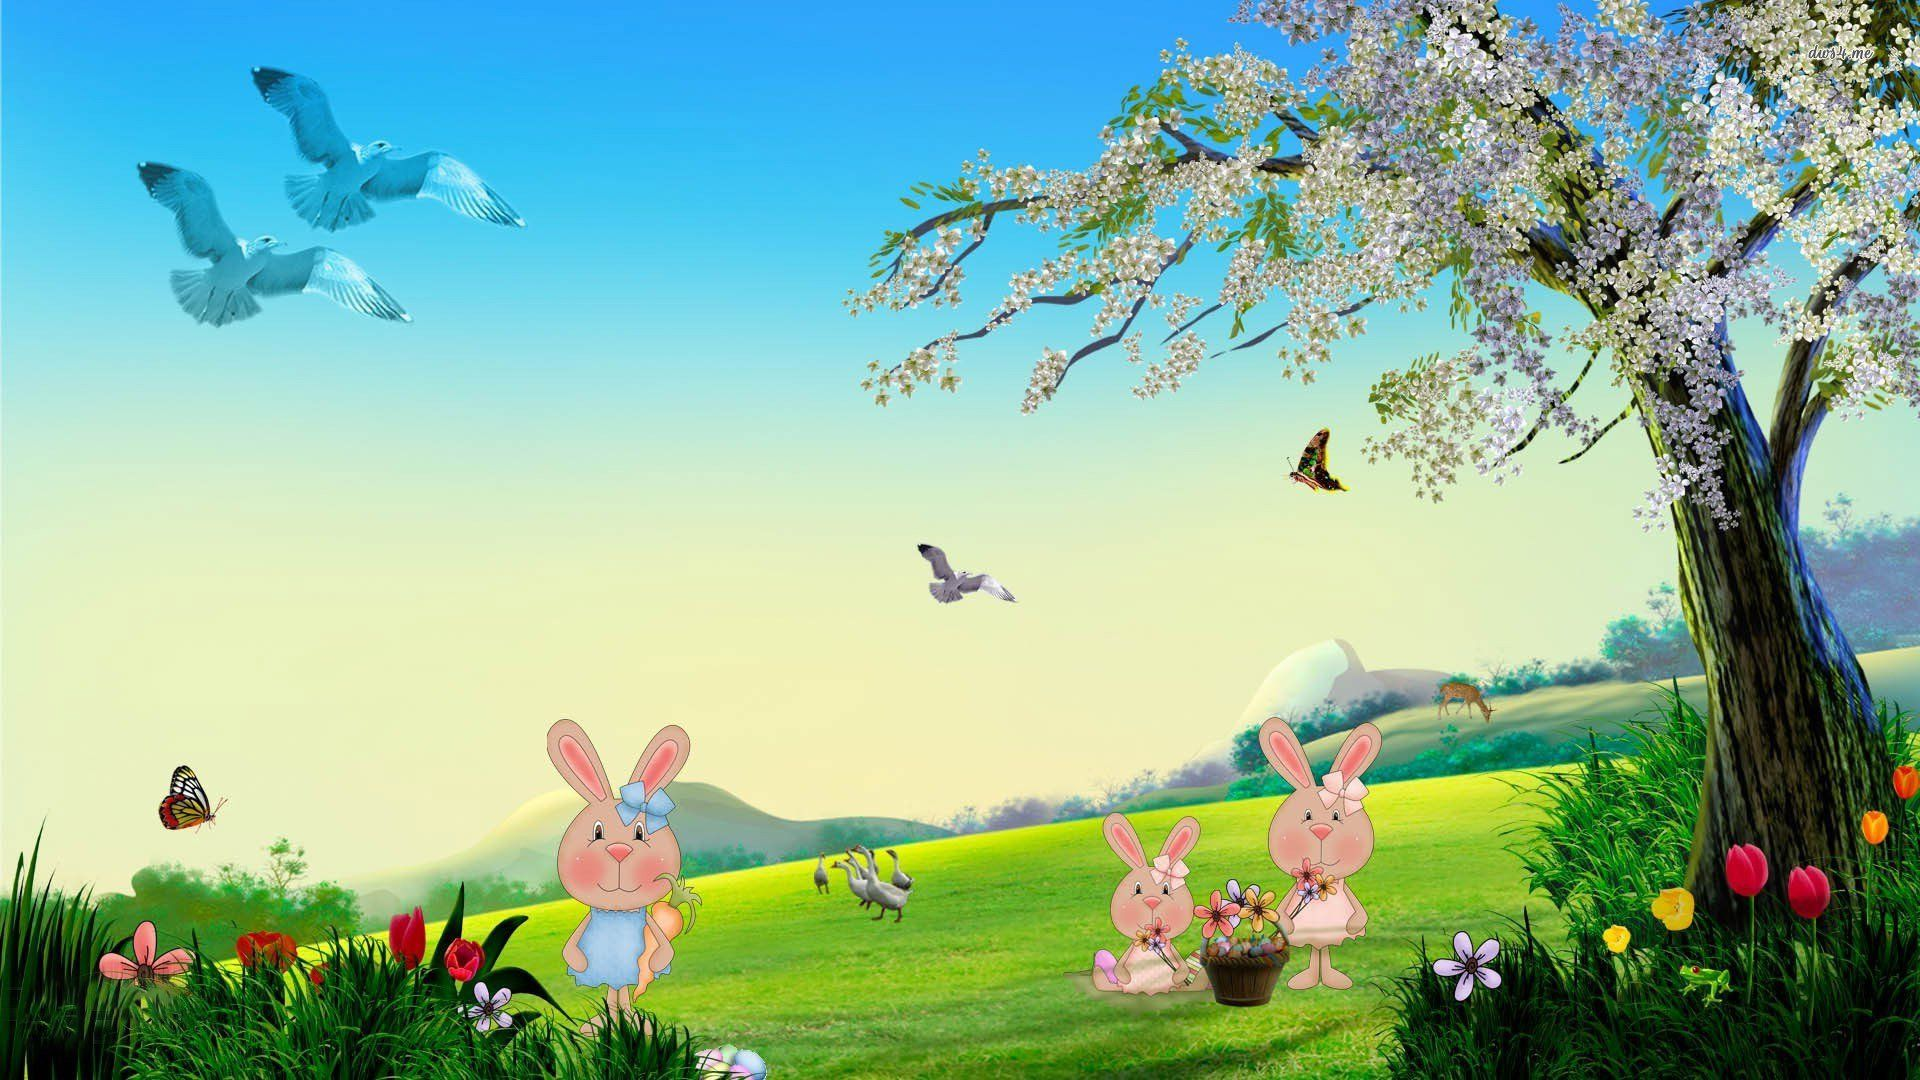 Bunny Wallpapers Bunny Backgrounds Bunny Images  Page 3